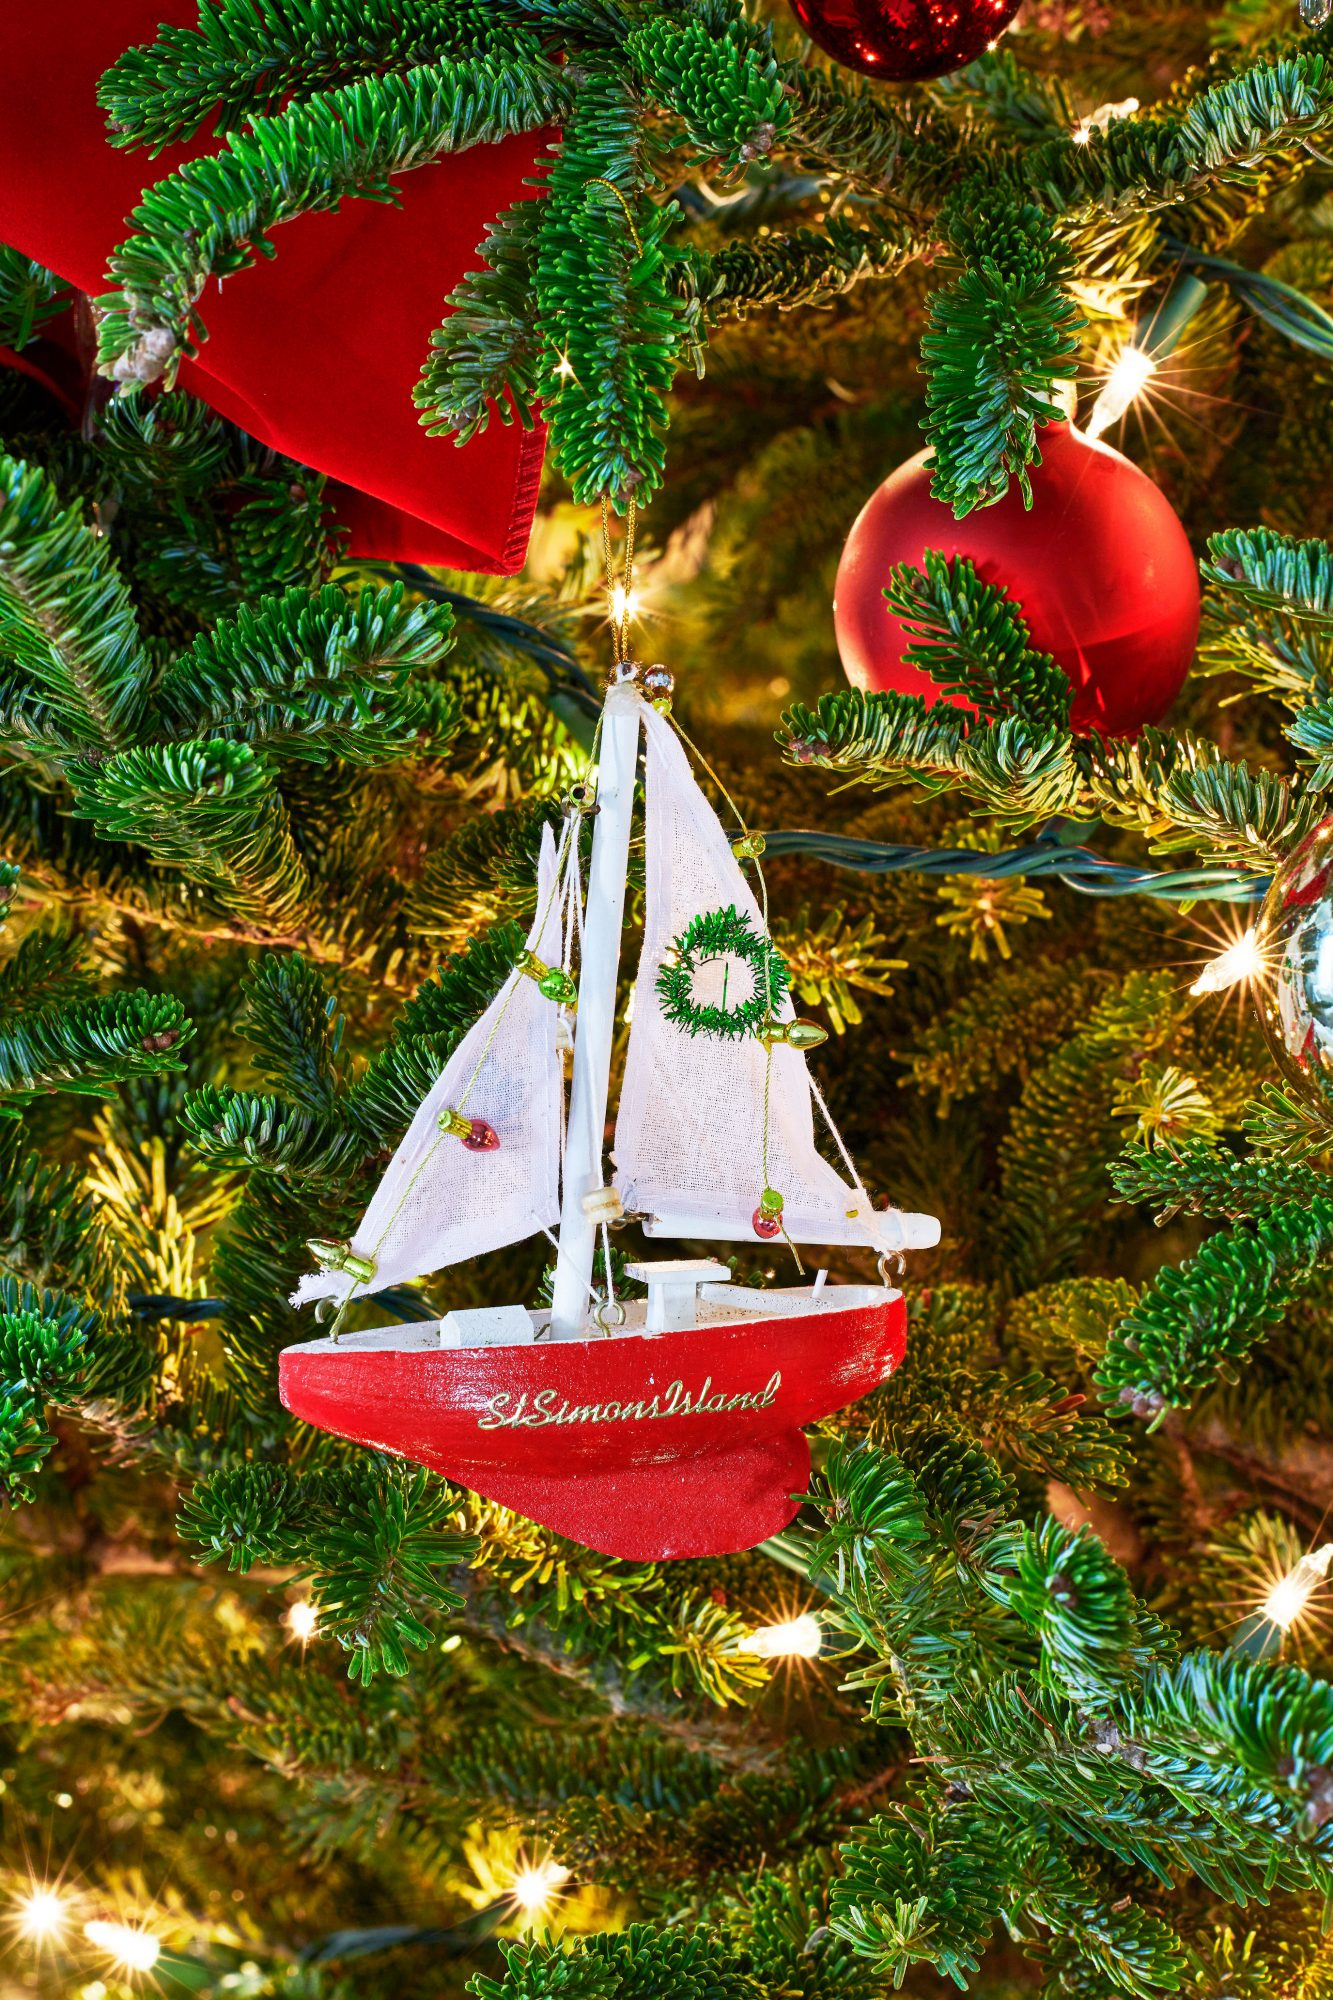 Red sailboat ornament on Christmas tree